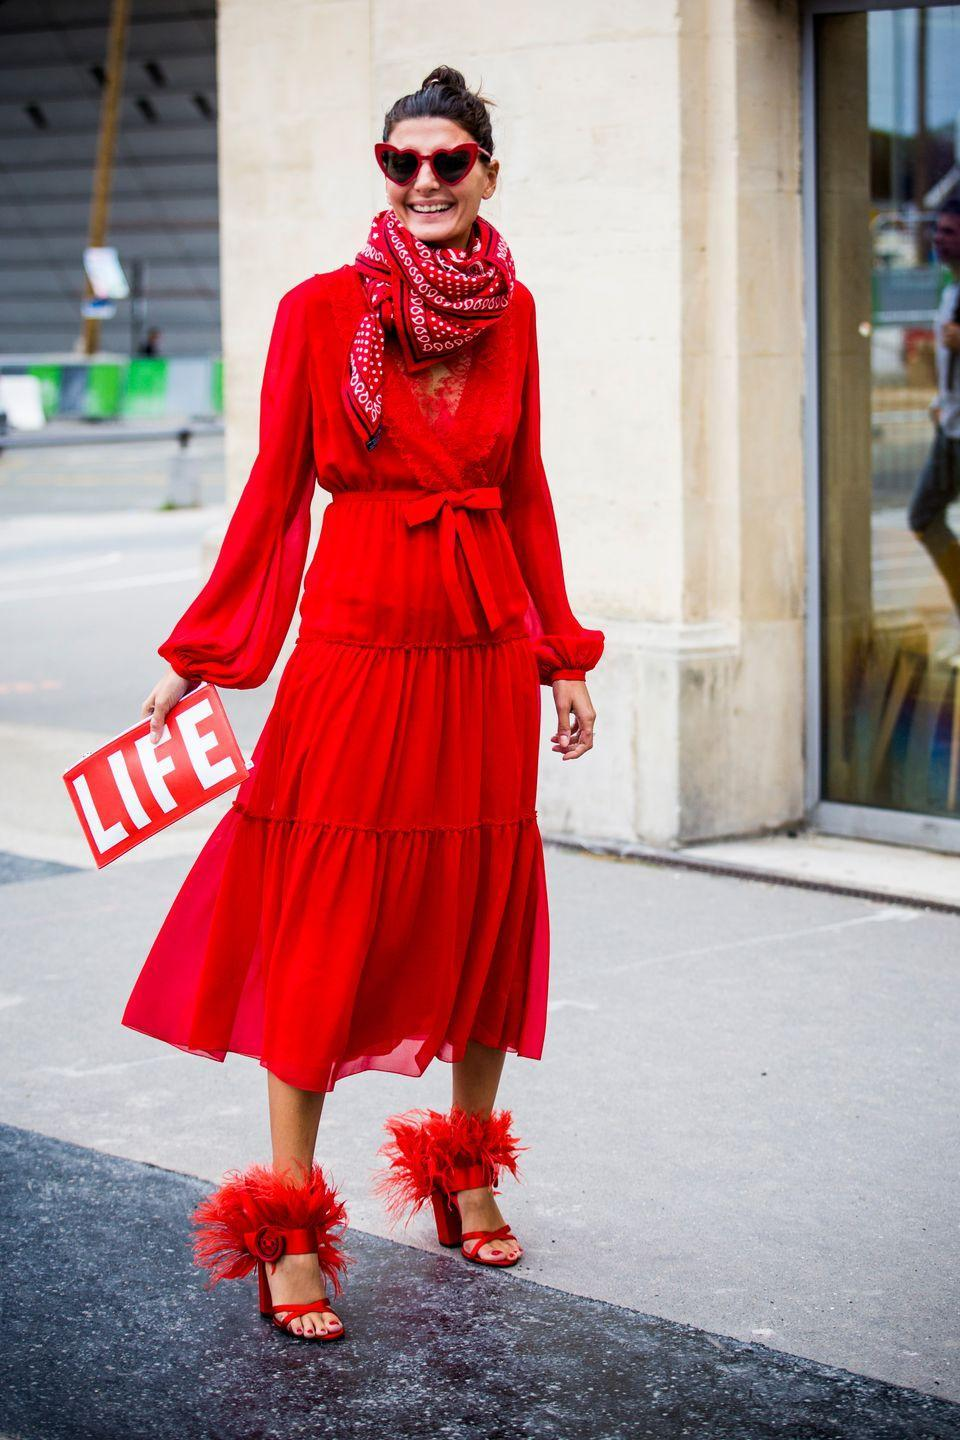 <p>Consider this image the look that cinched red as a major fashion trend for autumn/winter 2017-18. Few are bold enough to wear this vibrant shade from head-to-toe, but Battaglia committed fully, completing her ensemble with a pair of Prada's must-have feather heels.</p>